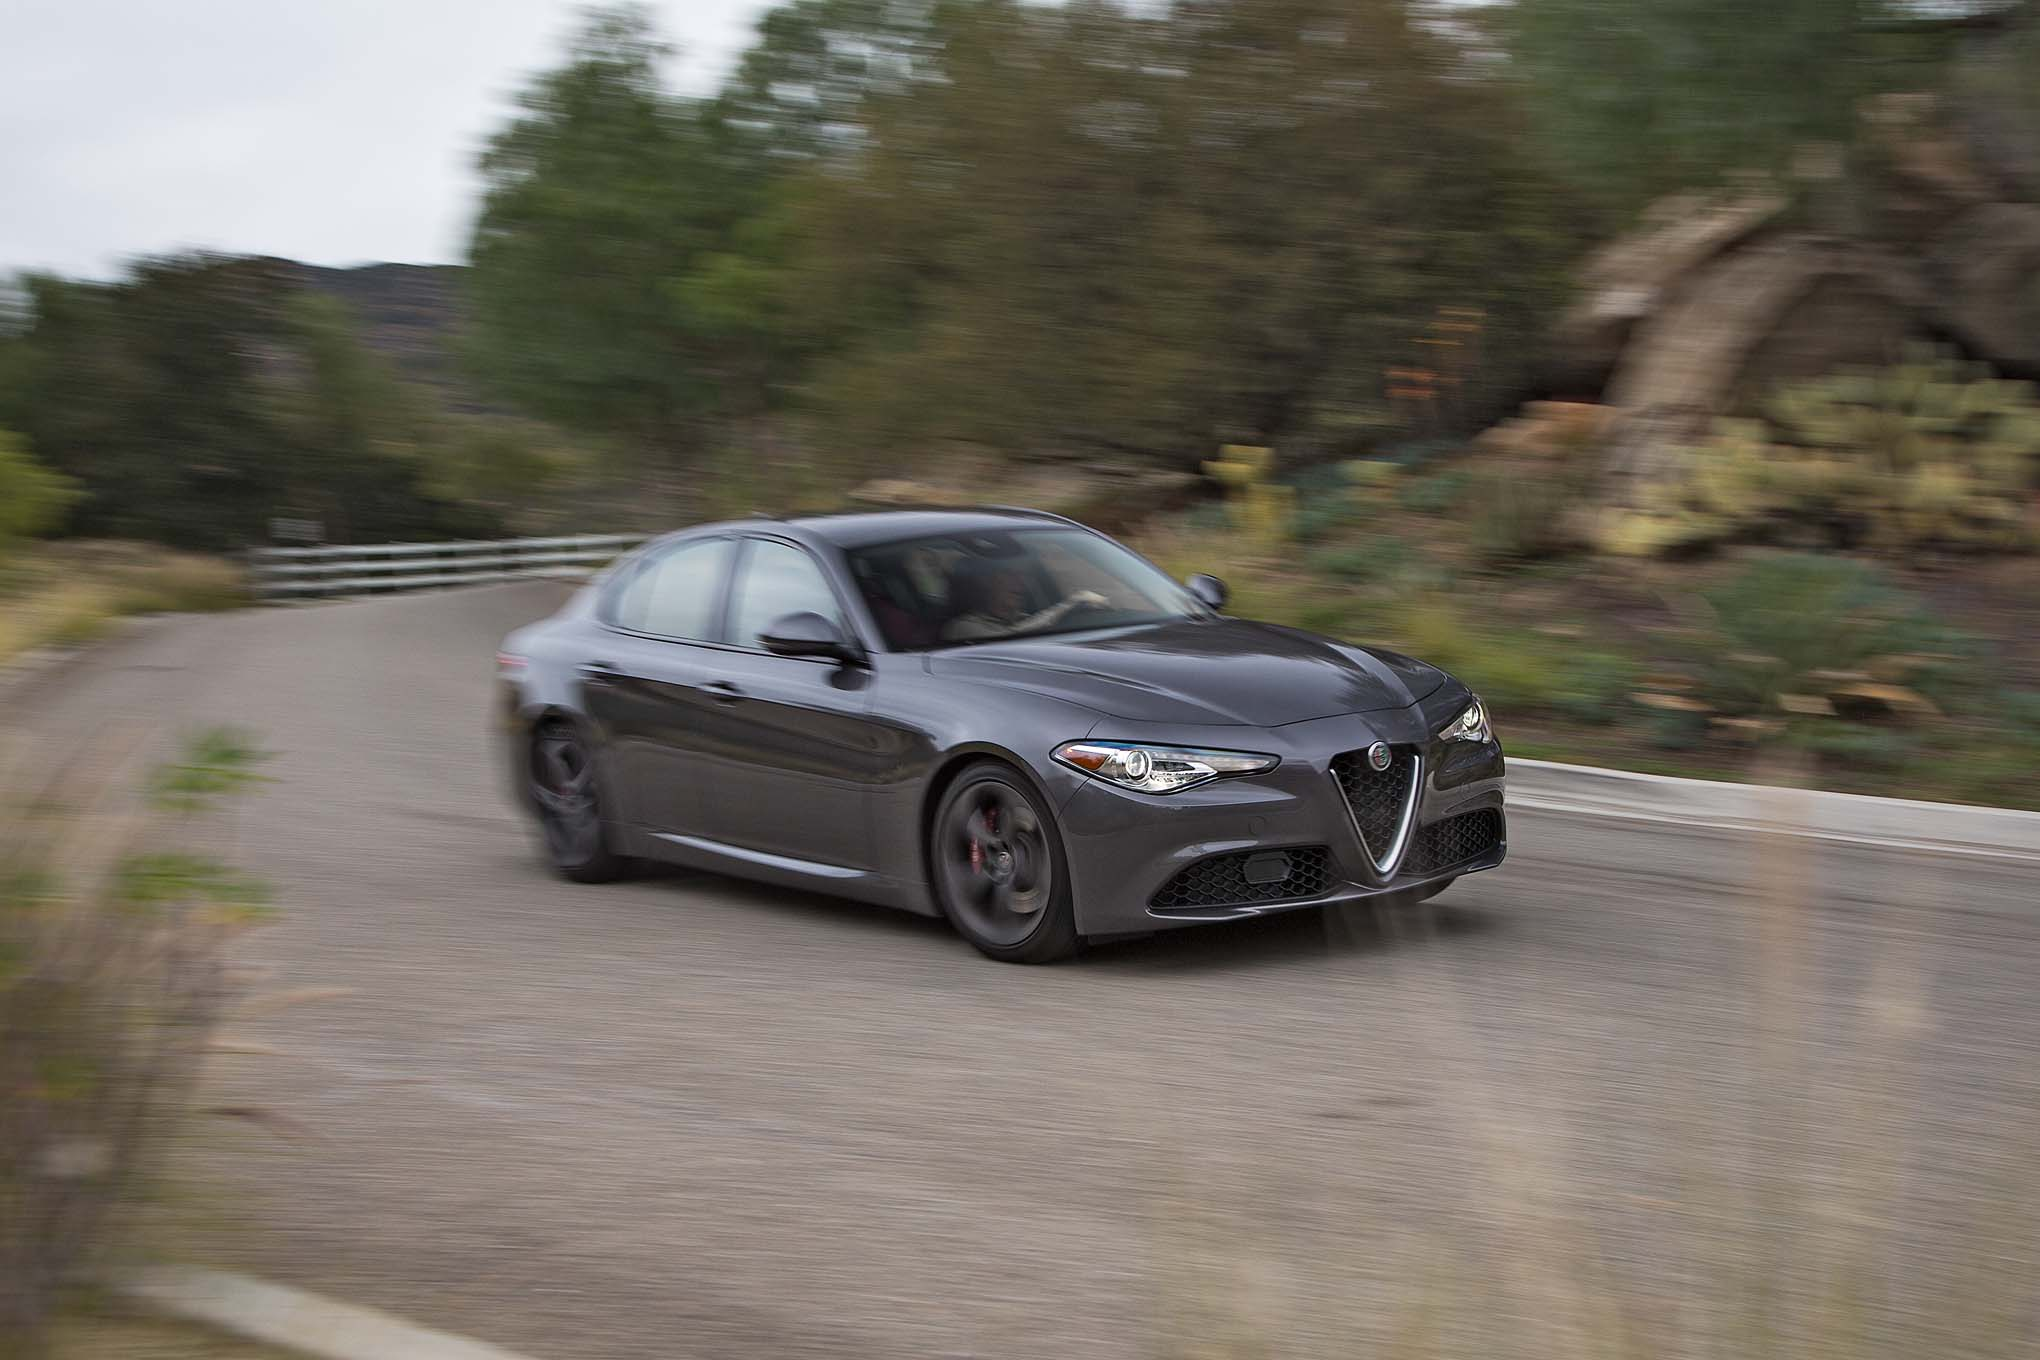 2017 Alfa Romeo Giulia 20 front three quarter turn